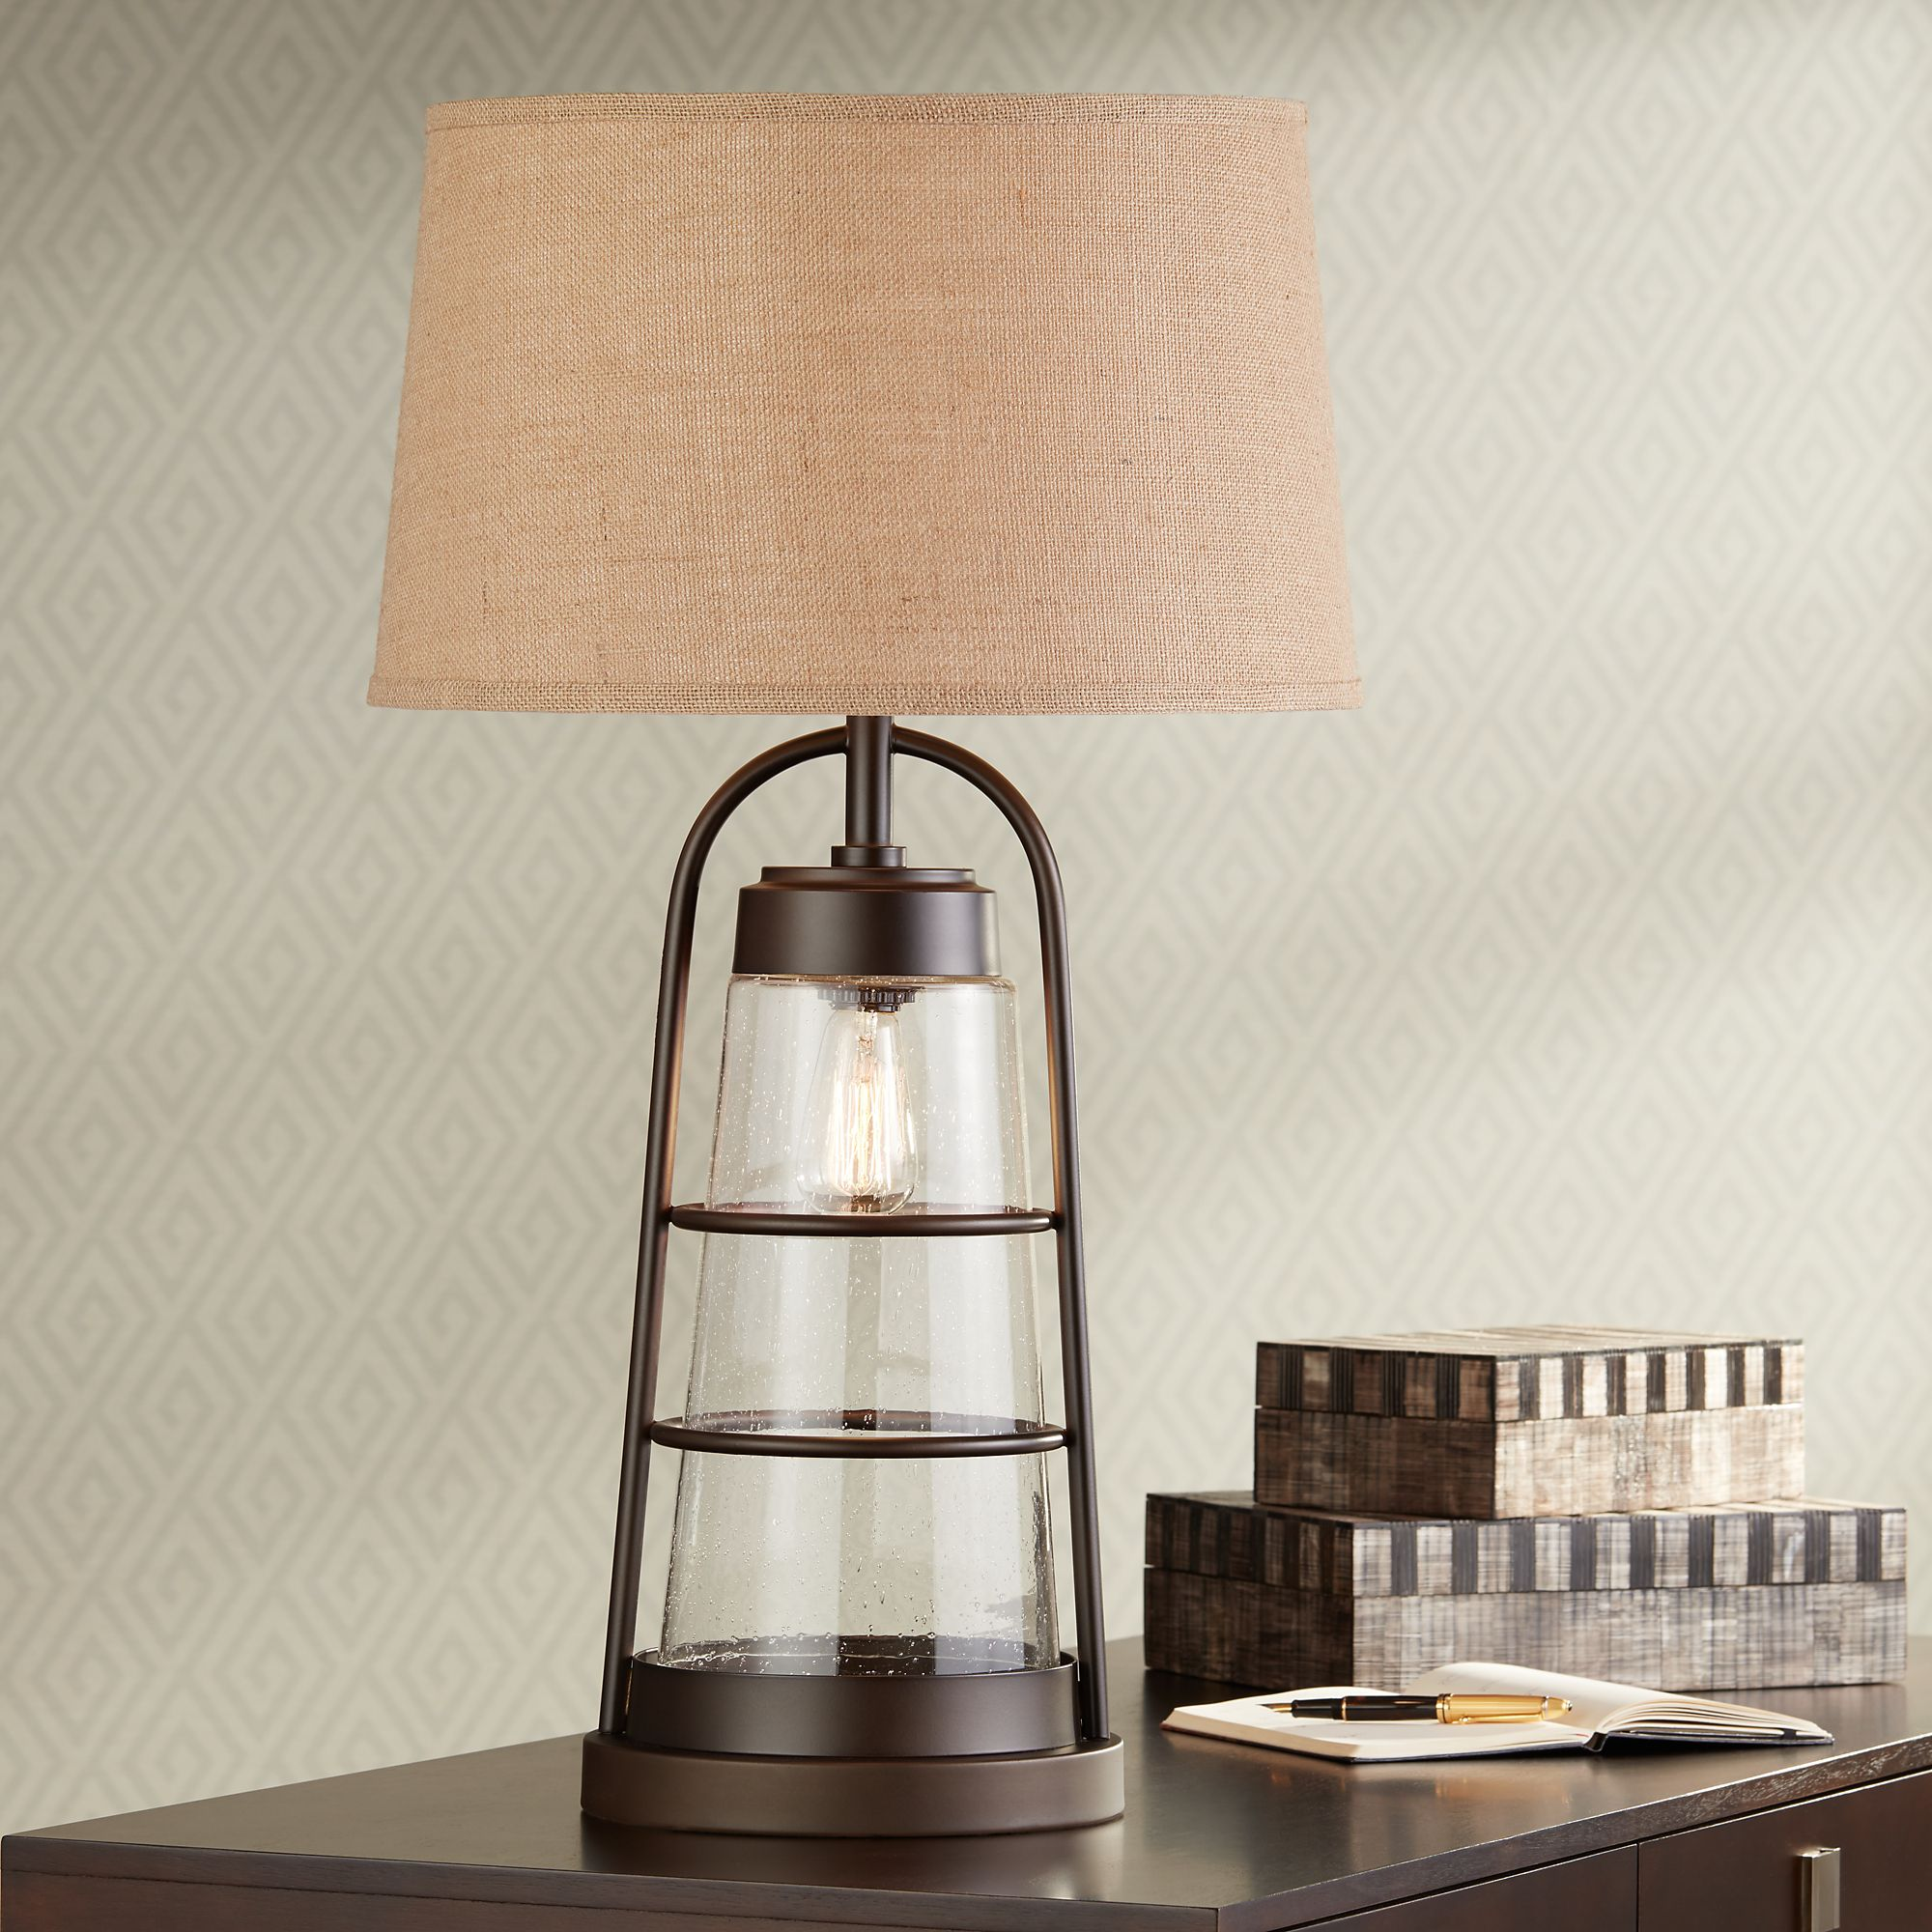 Beau Industrial Lantern Table Lamp With Night Light